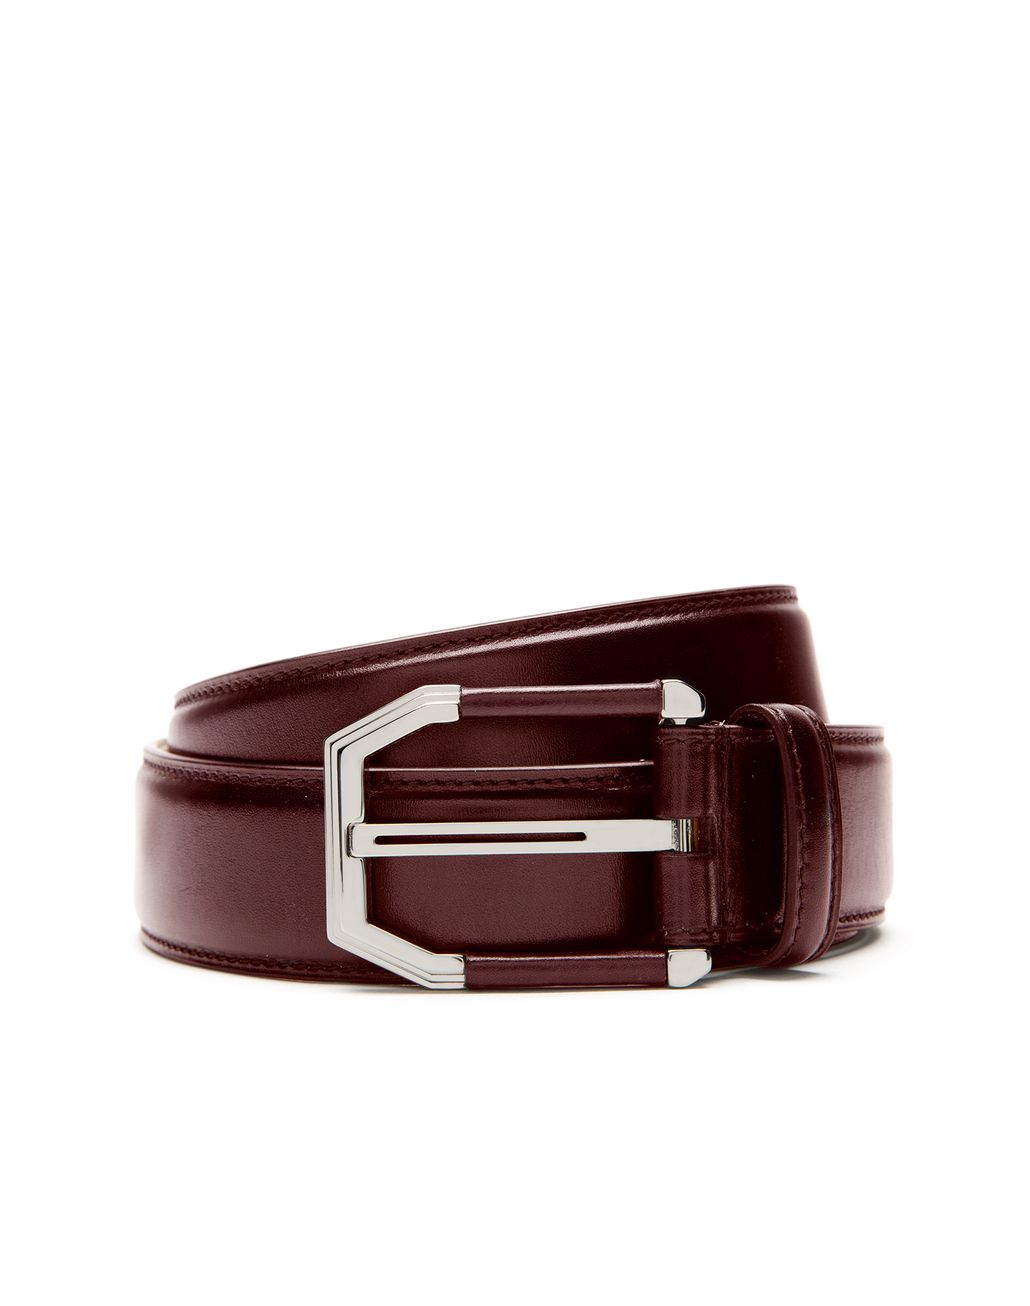 BRIONI Oxblood Belt in Calfskin Leather with Leather Details on Buckle Belt Man r